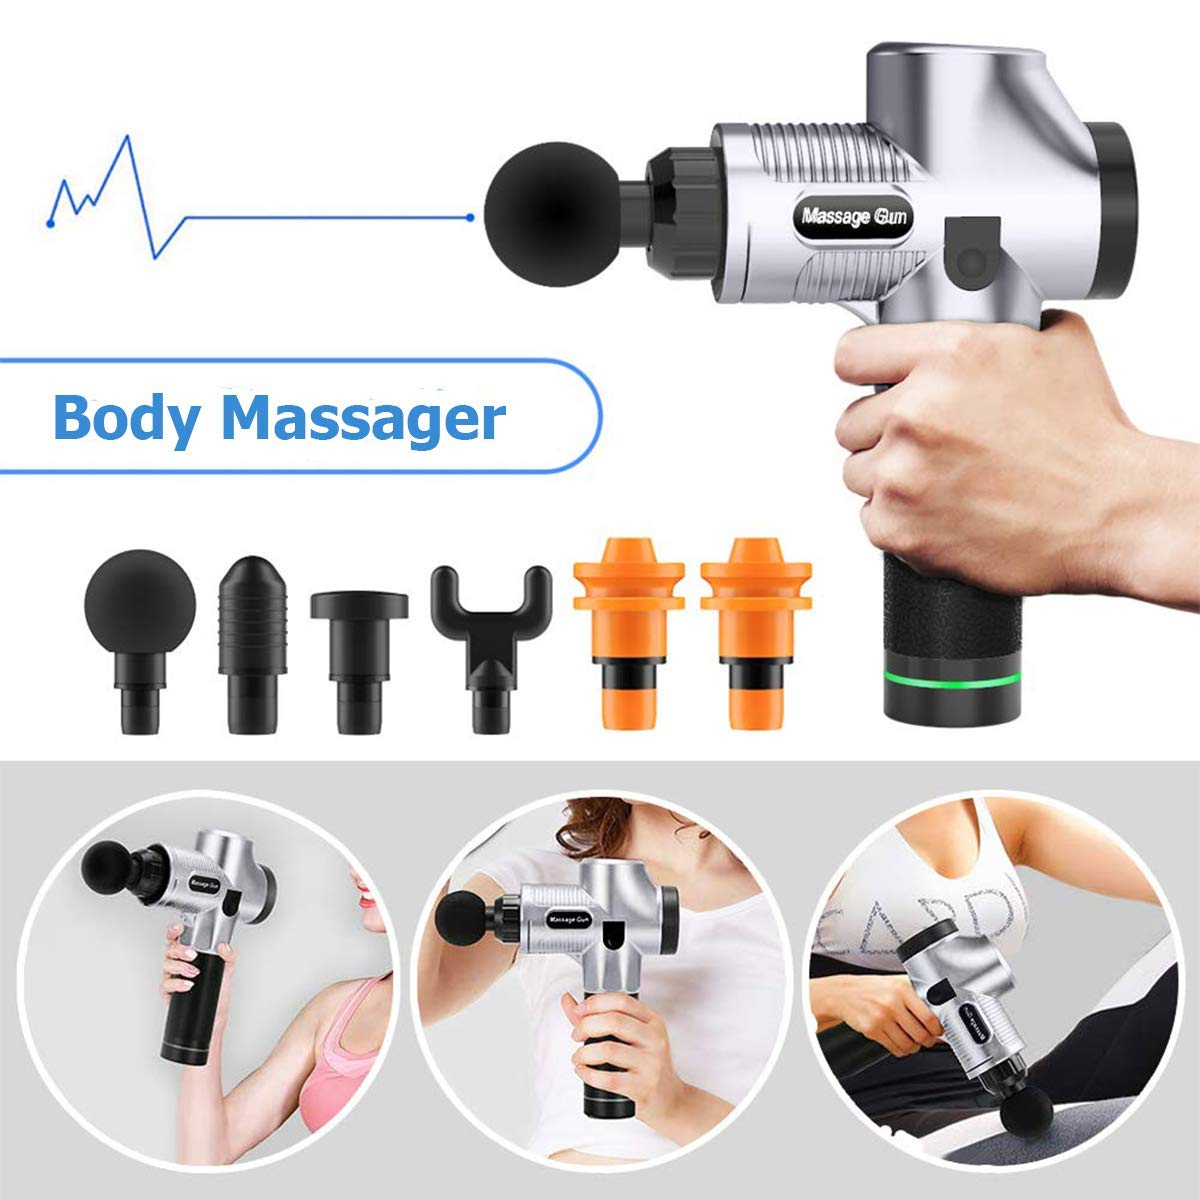 Massage Gun Deep Tissue Percussion Massager for Muscle Tension Relief, Handheld Electric Massager w/ 30 Speeds Rechargeable 2500mAh Battery 6 Heads for Athletes/Physical Therapist/Bodybuilder (Silver)